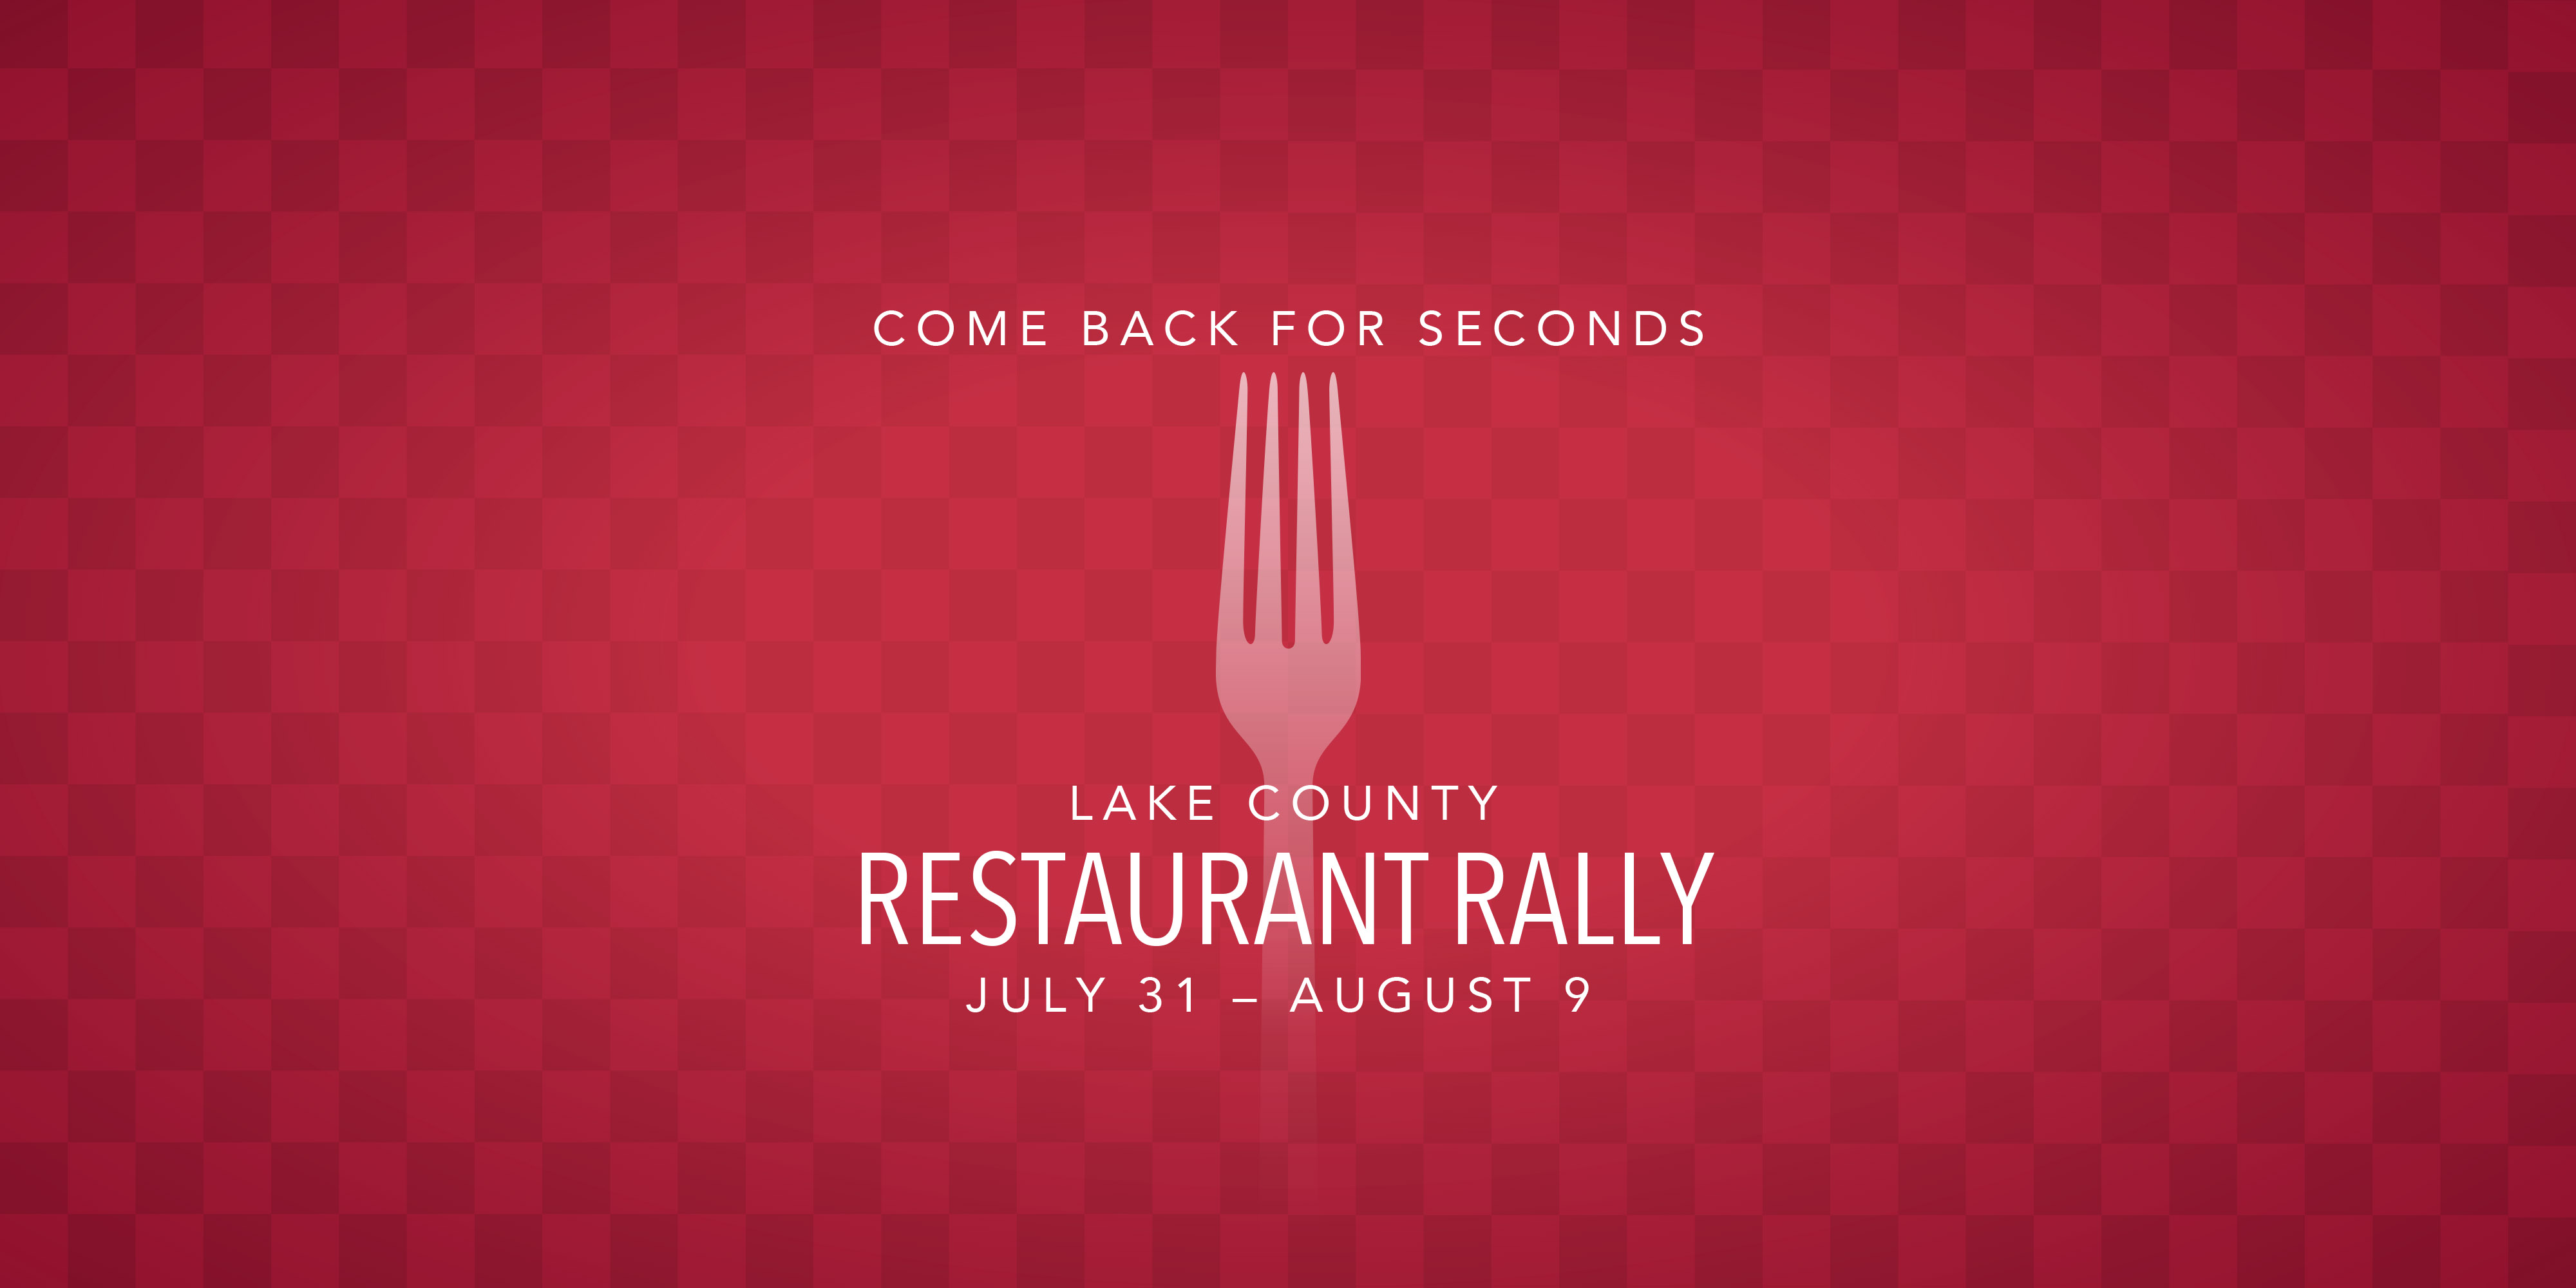 Lake County Restaurant Rally